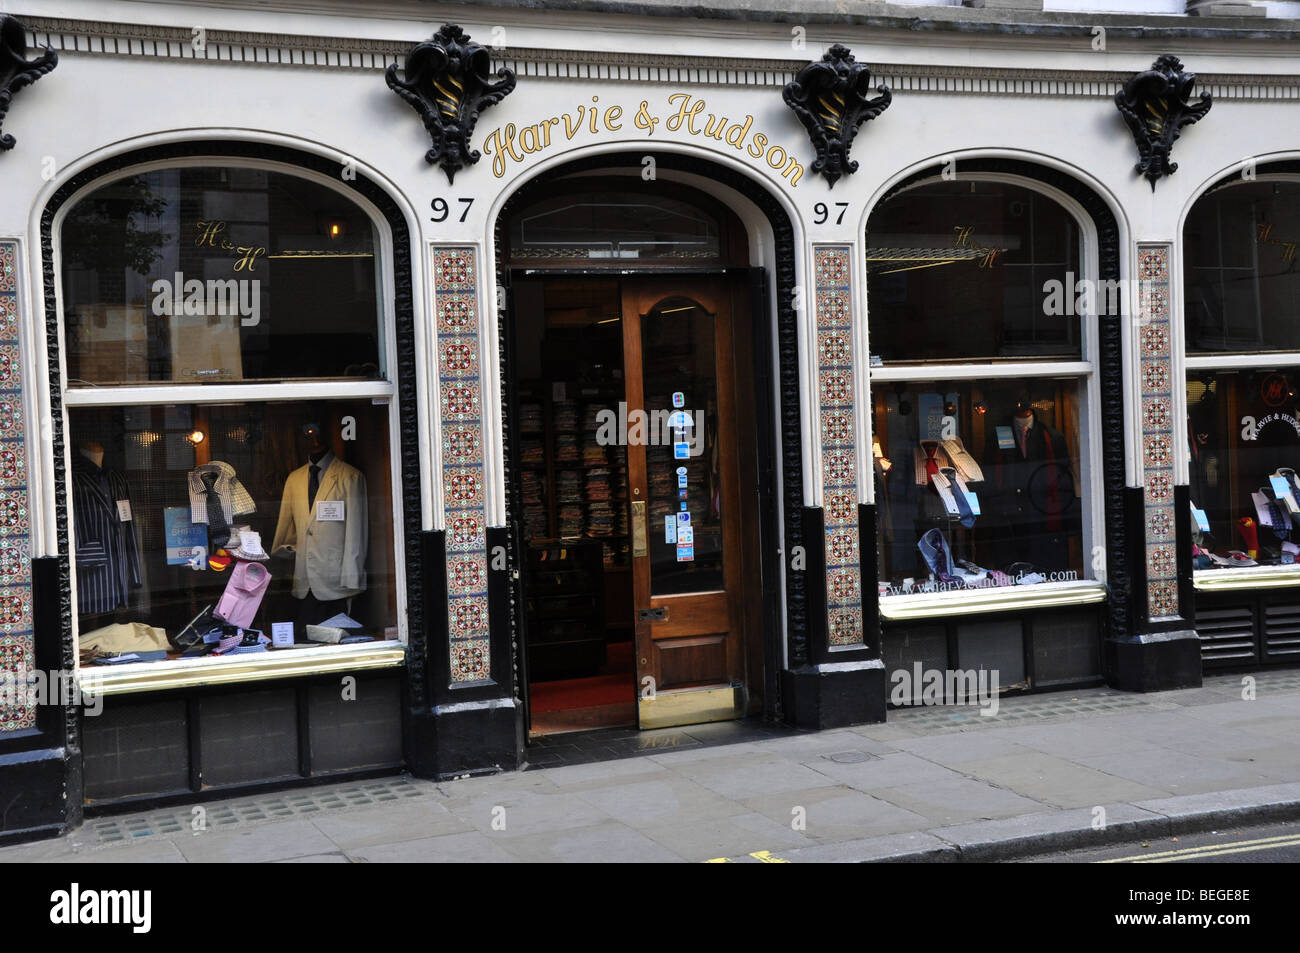 Harvie and Hudson Exclusive Mens Outfitters London UK Jermyn Street - Stock Image